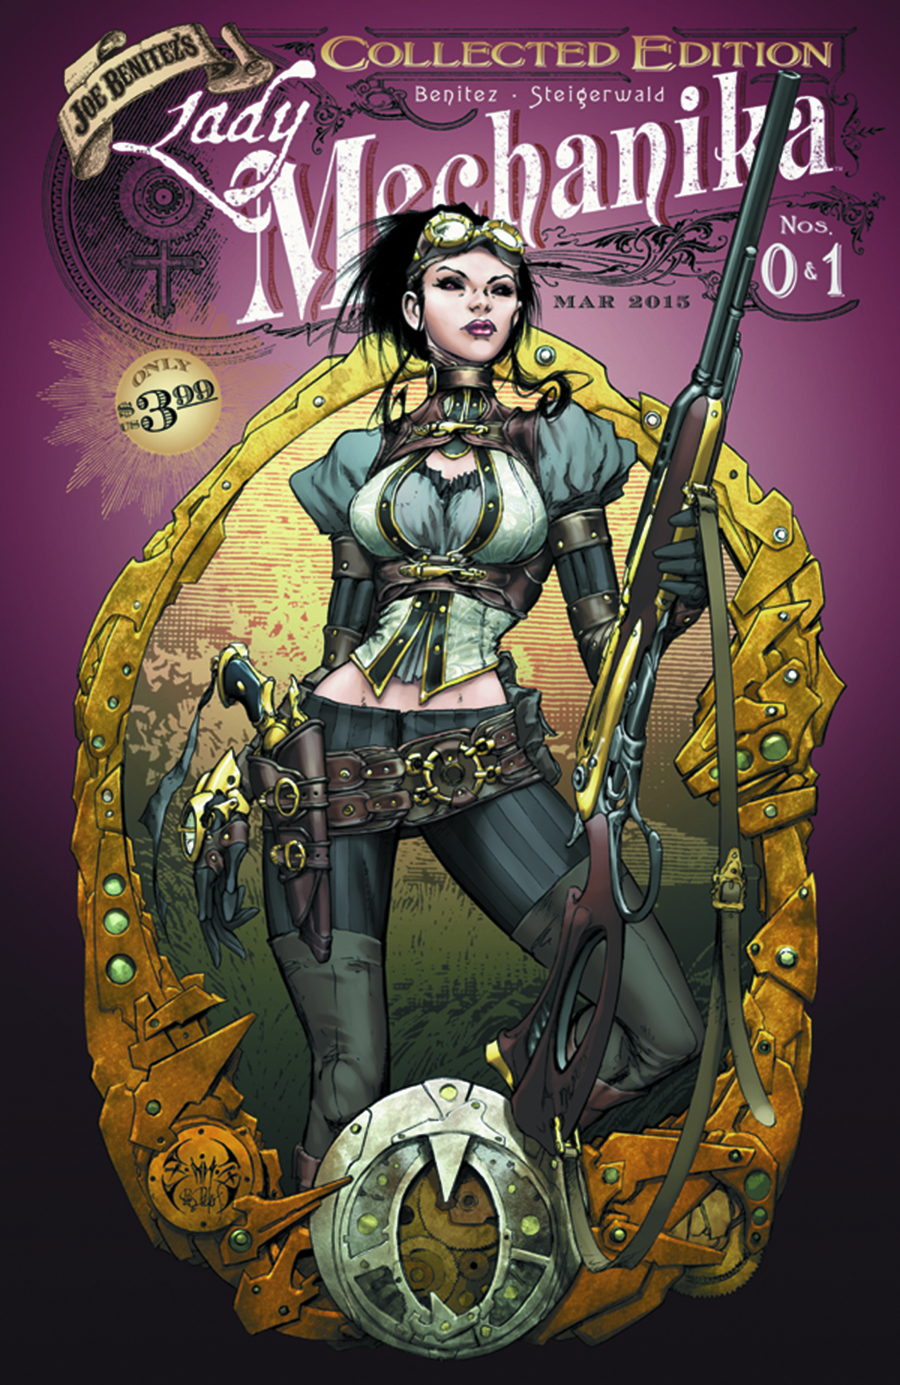 LADY MECHANIKA #0 & #1 COLLECTED ED (MR)